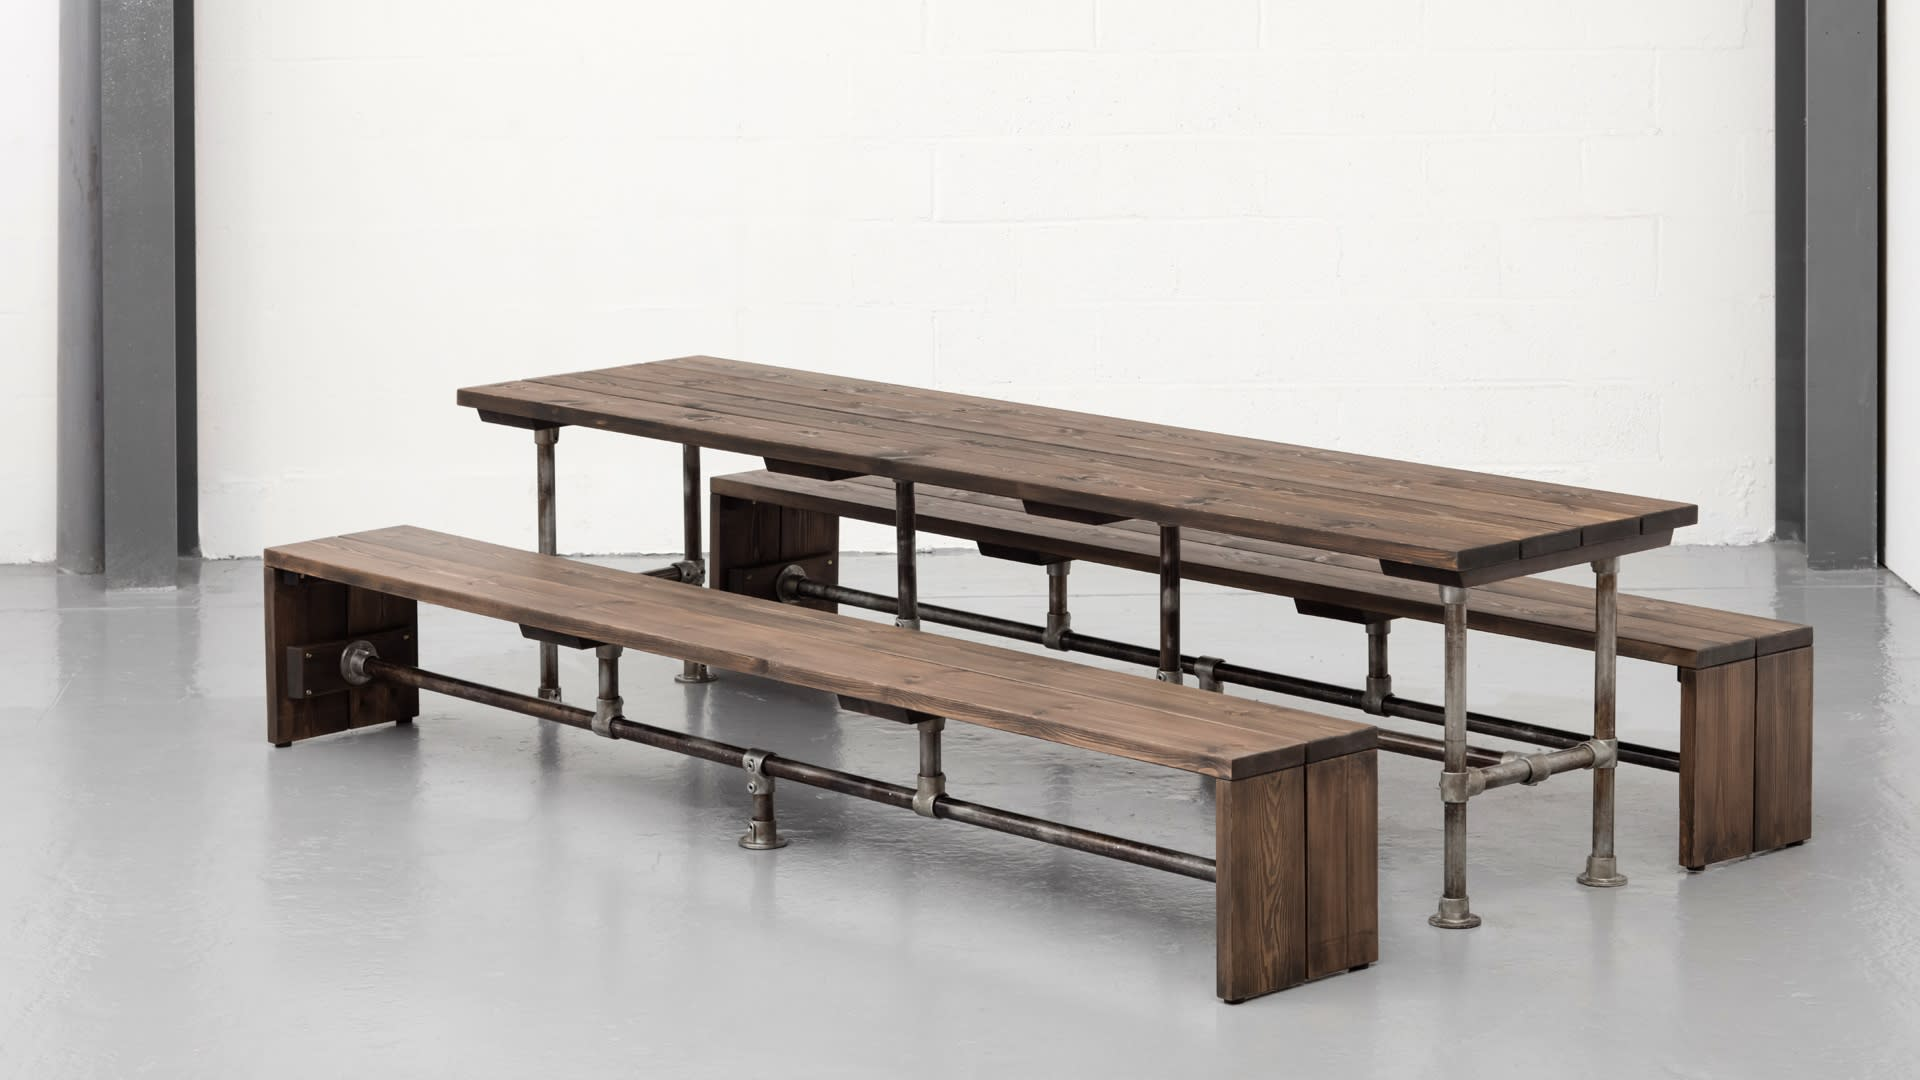 Steel Vintage construction table & bench